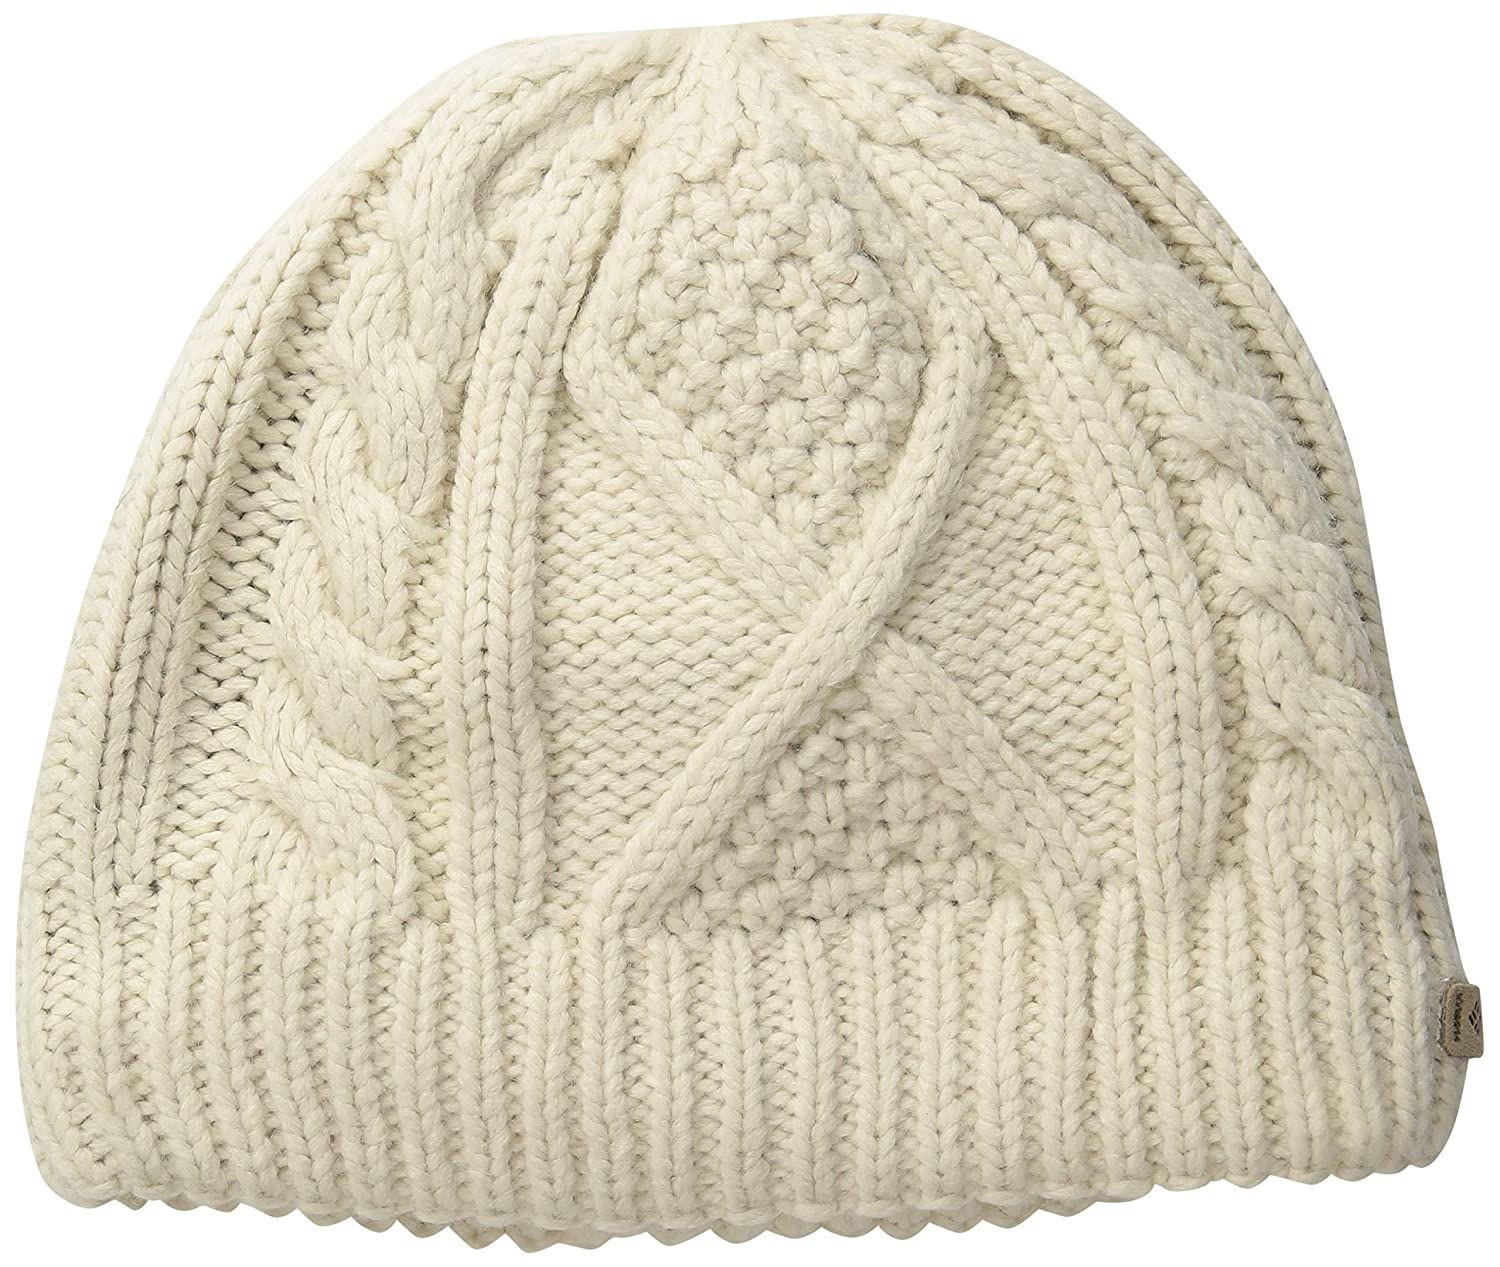 Columbia s Women s Cabled Cutie Beanie at Amazon Women s Clothing store  c08a912834f